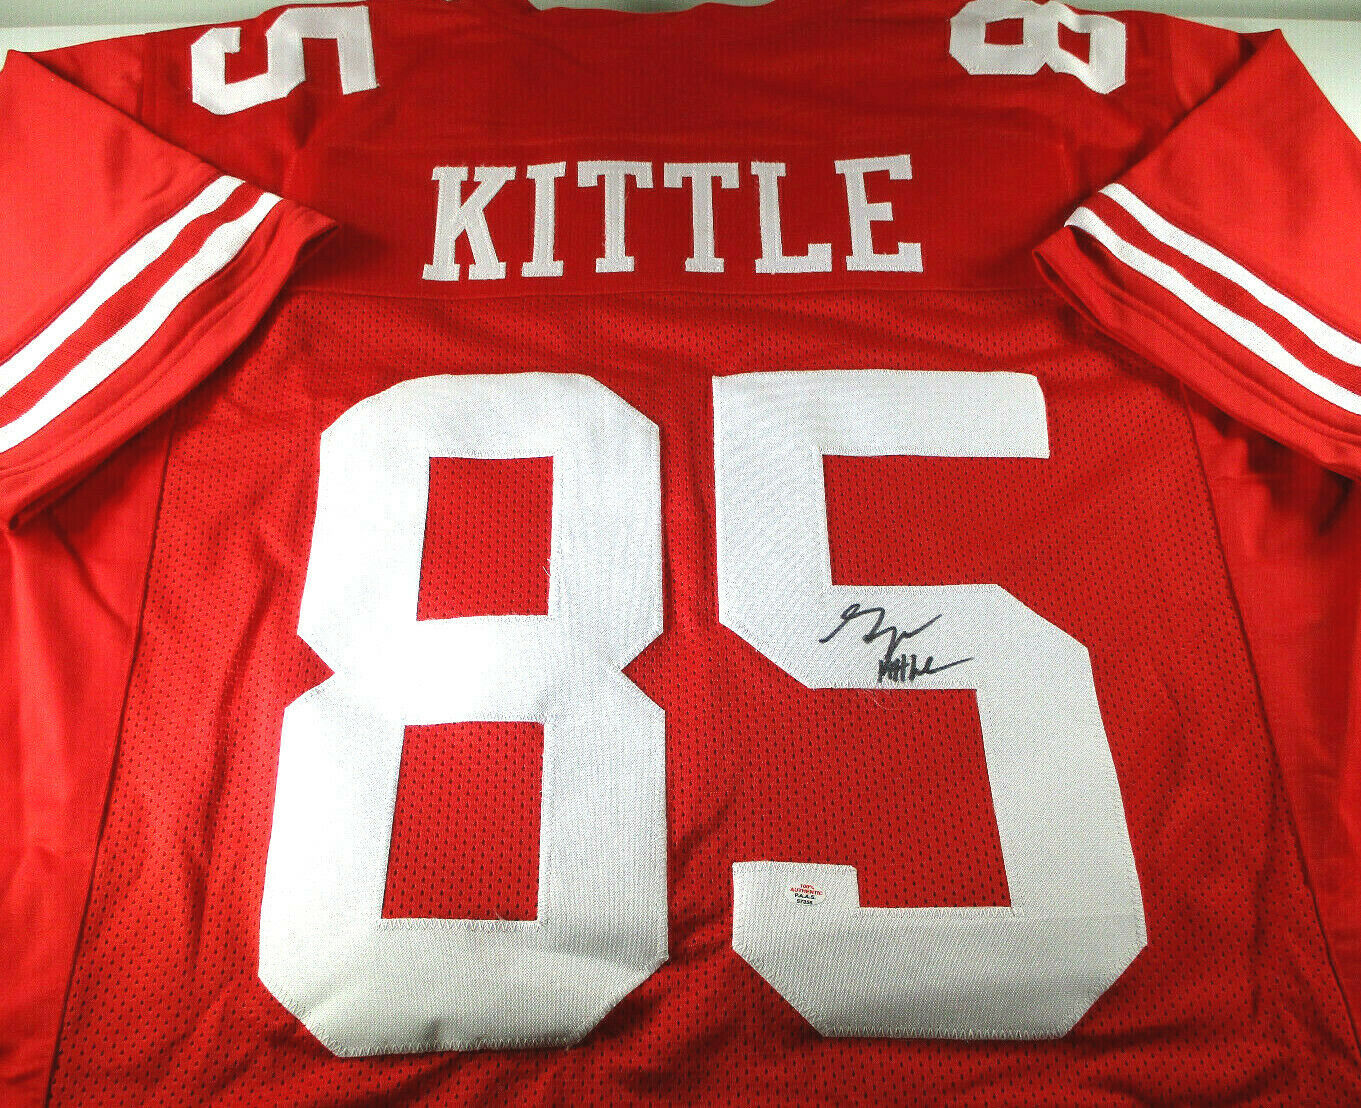 GEORGE KITTLE / SAN FRANCISCO 49ERS / AUTOGRAPHED 49ERS RED CUSTOM JERSEY / COA